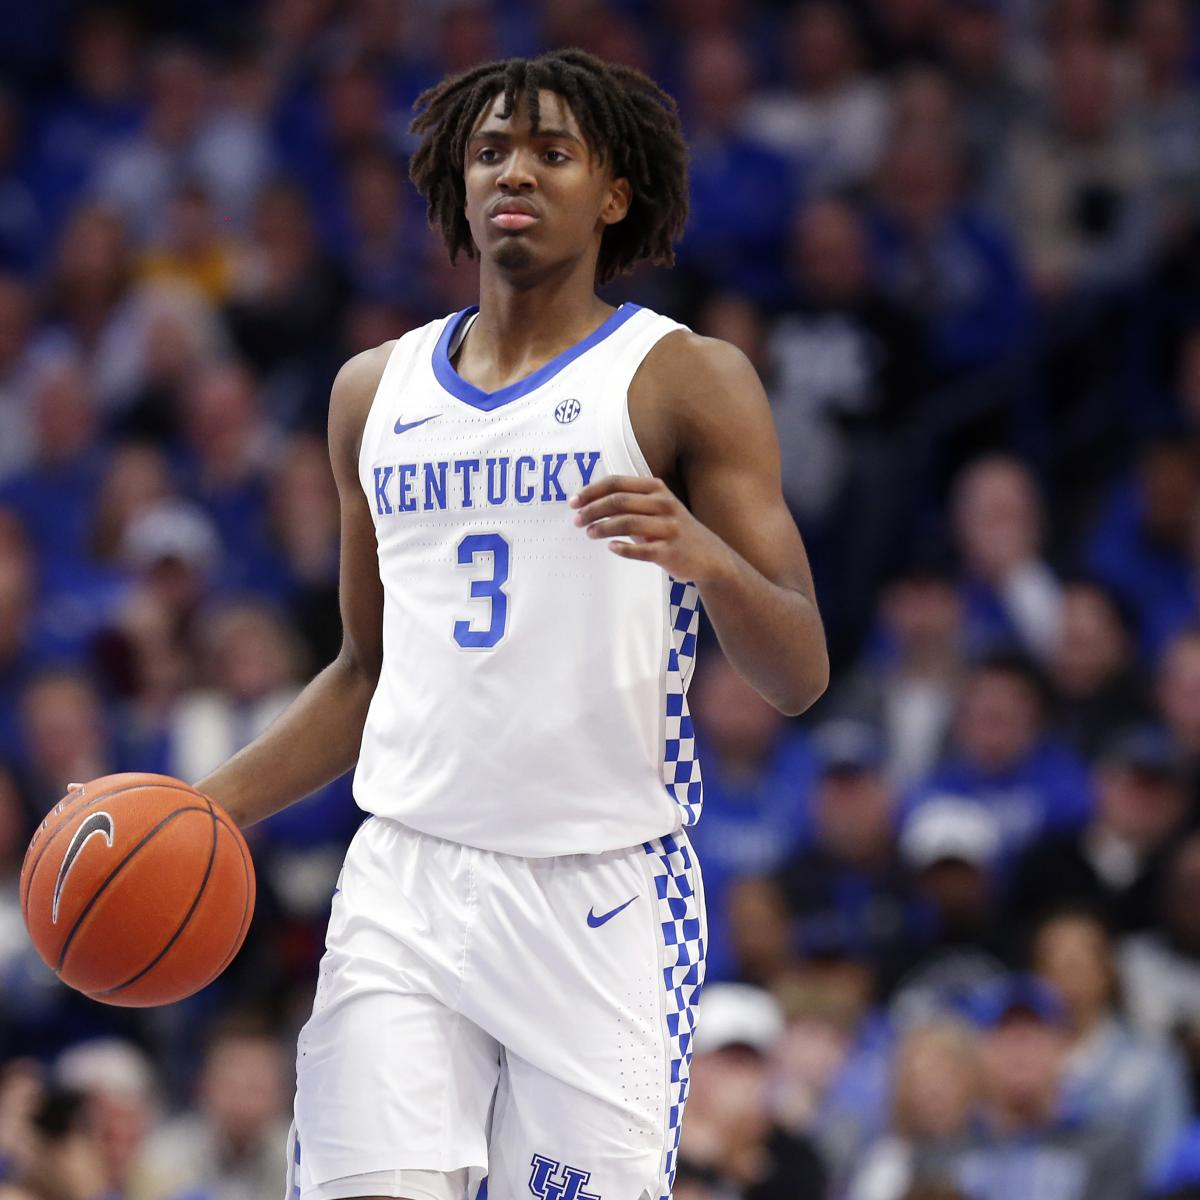 Lebron James Congratulates Tyrese Maxey On 76ers Pick Philly Got A Good One Bleacher Report Latest News Videos And Highlights